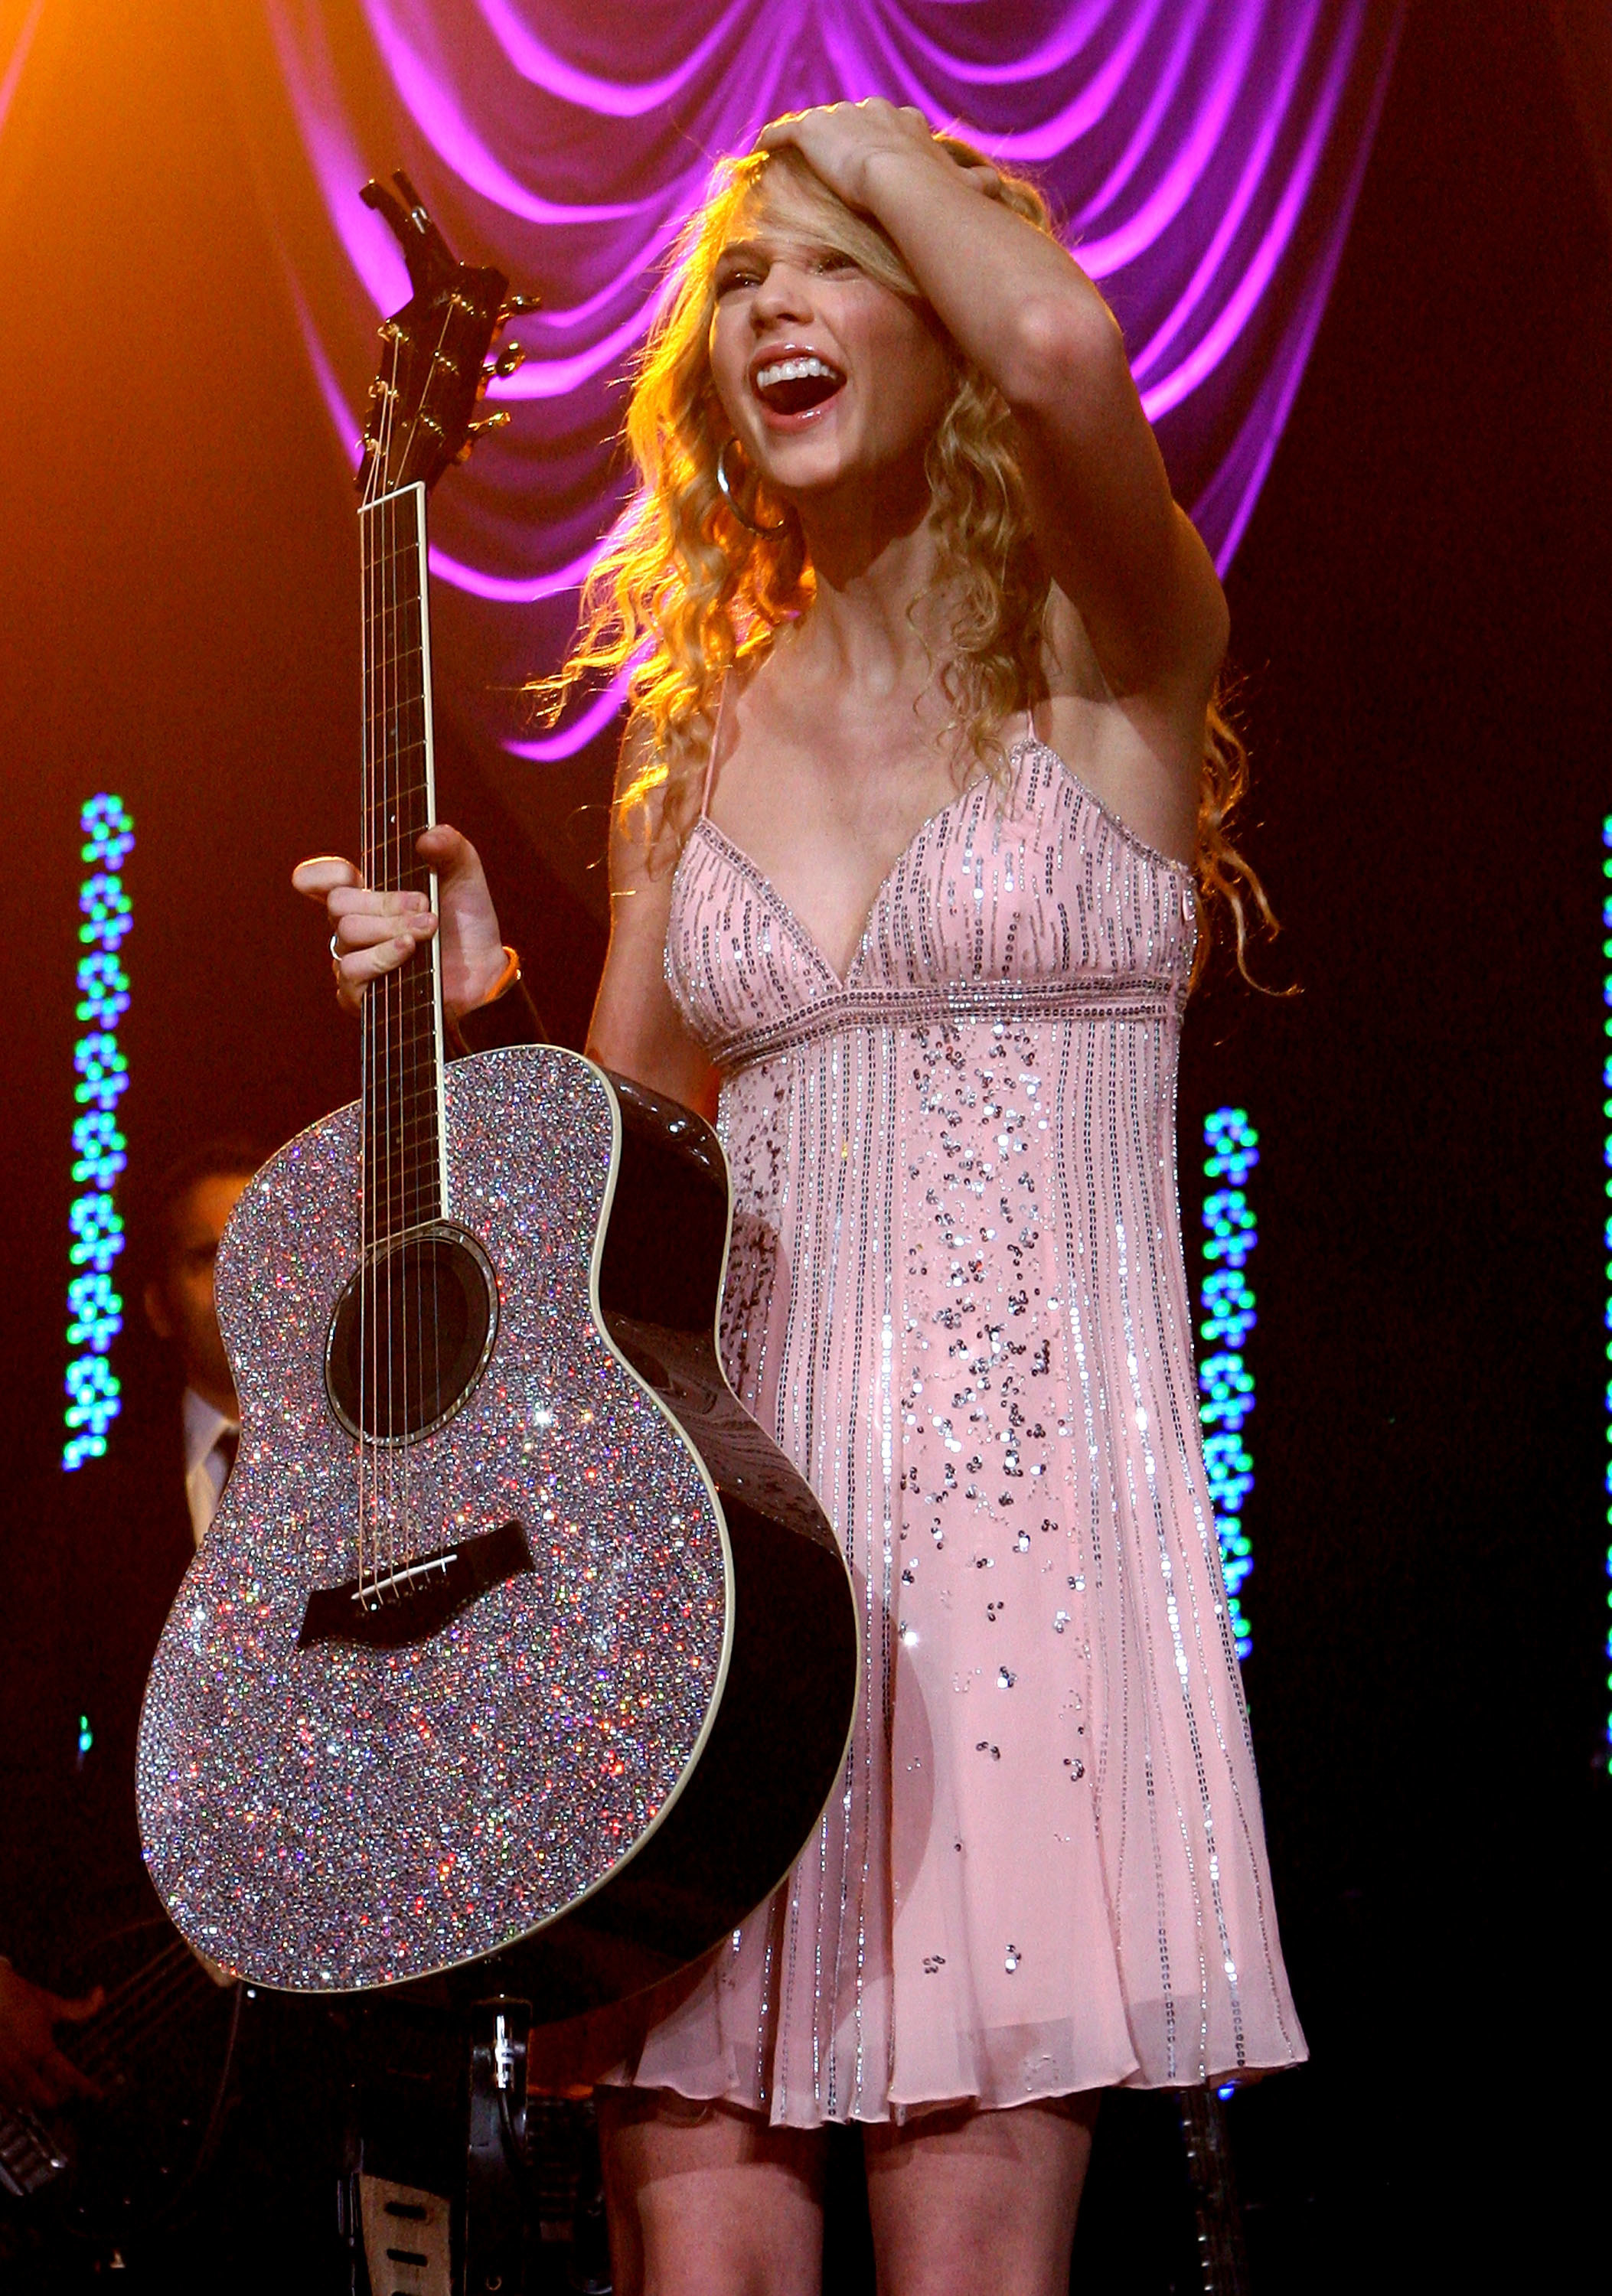 Taylor Swift performing in a pink dress, holding glittery guitar